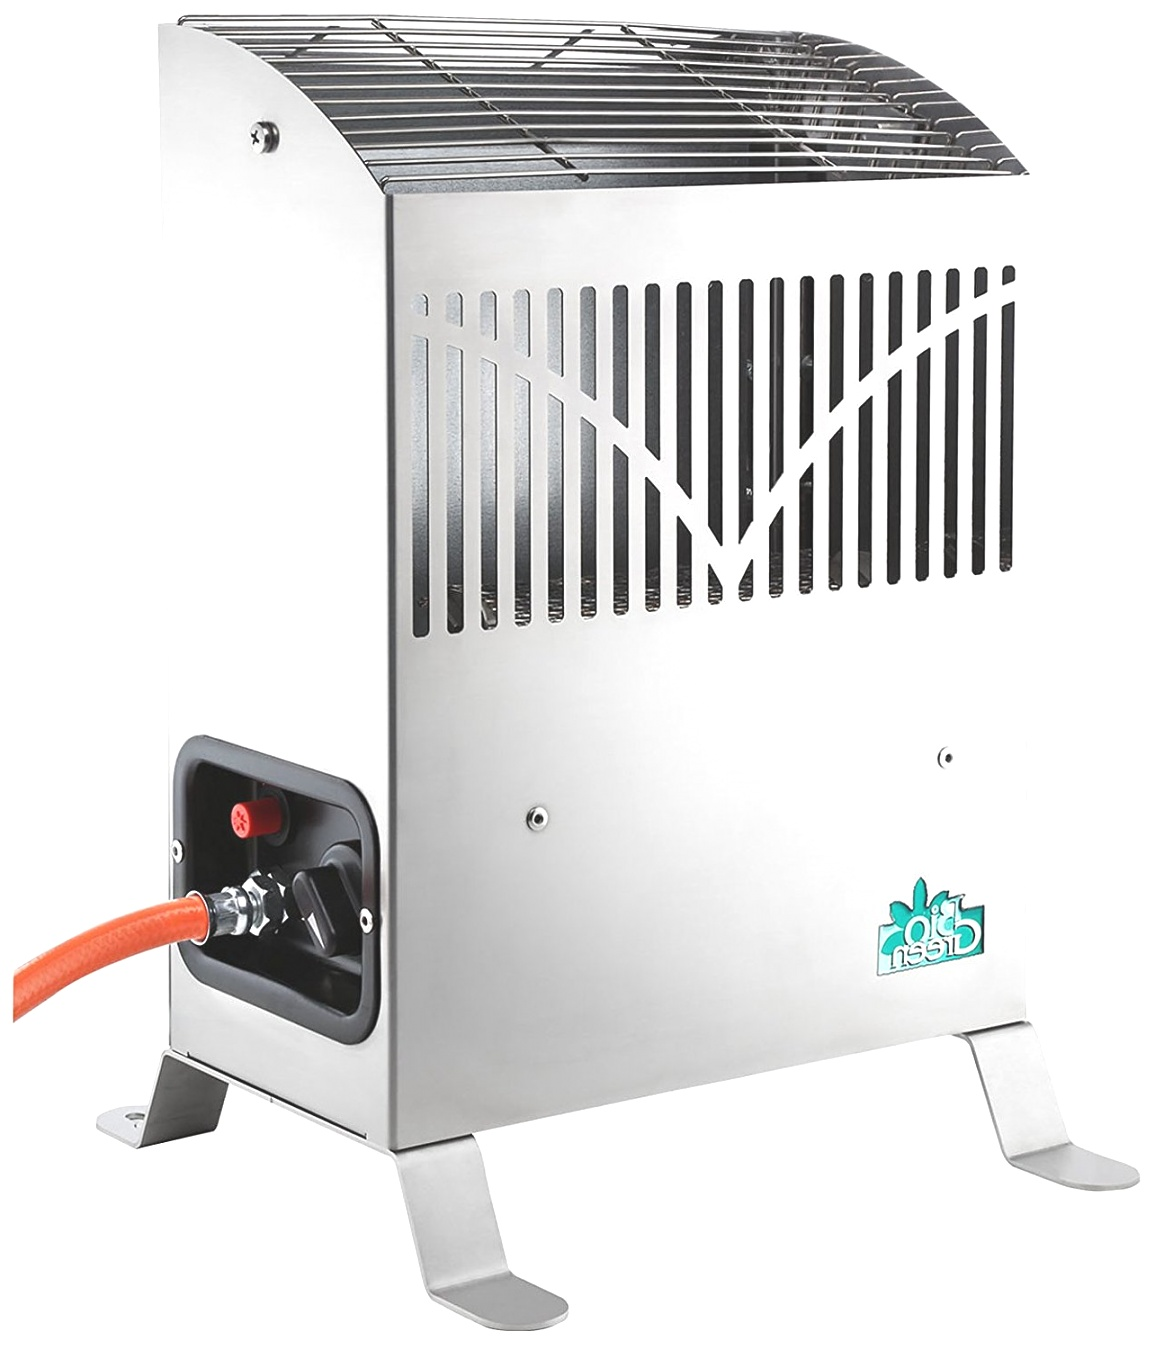 small greenhouse heater | Bio Green FY 25/GB 2.5KW Frosty Propane Greenhouse Heater | Garden ..